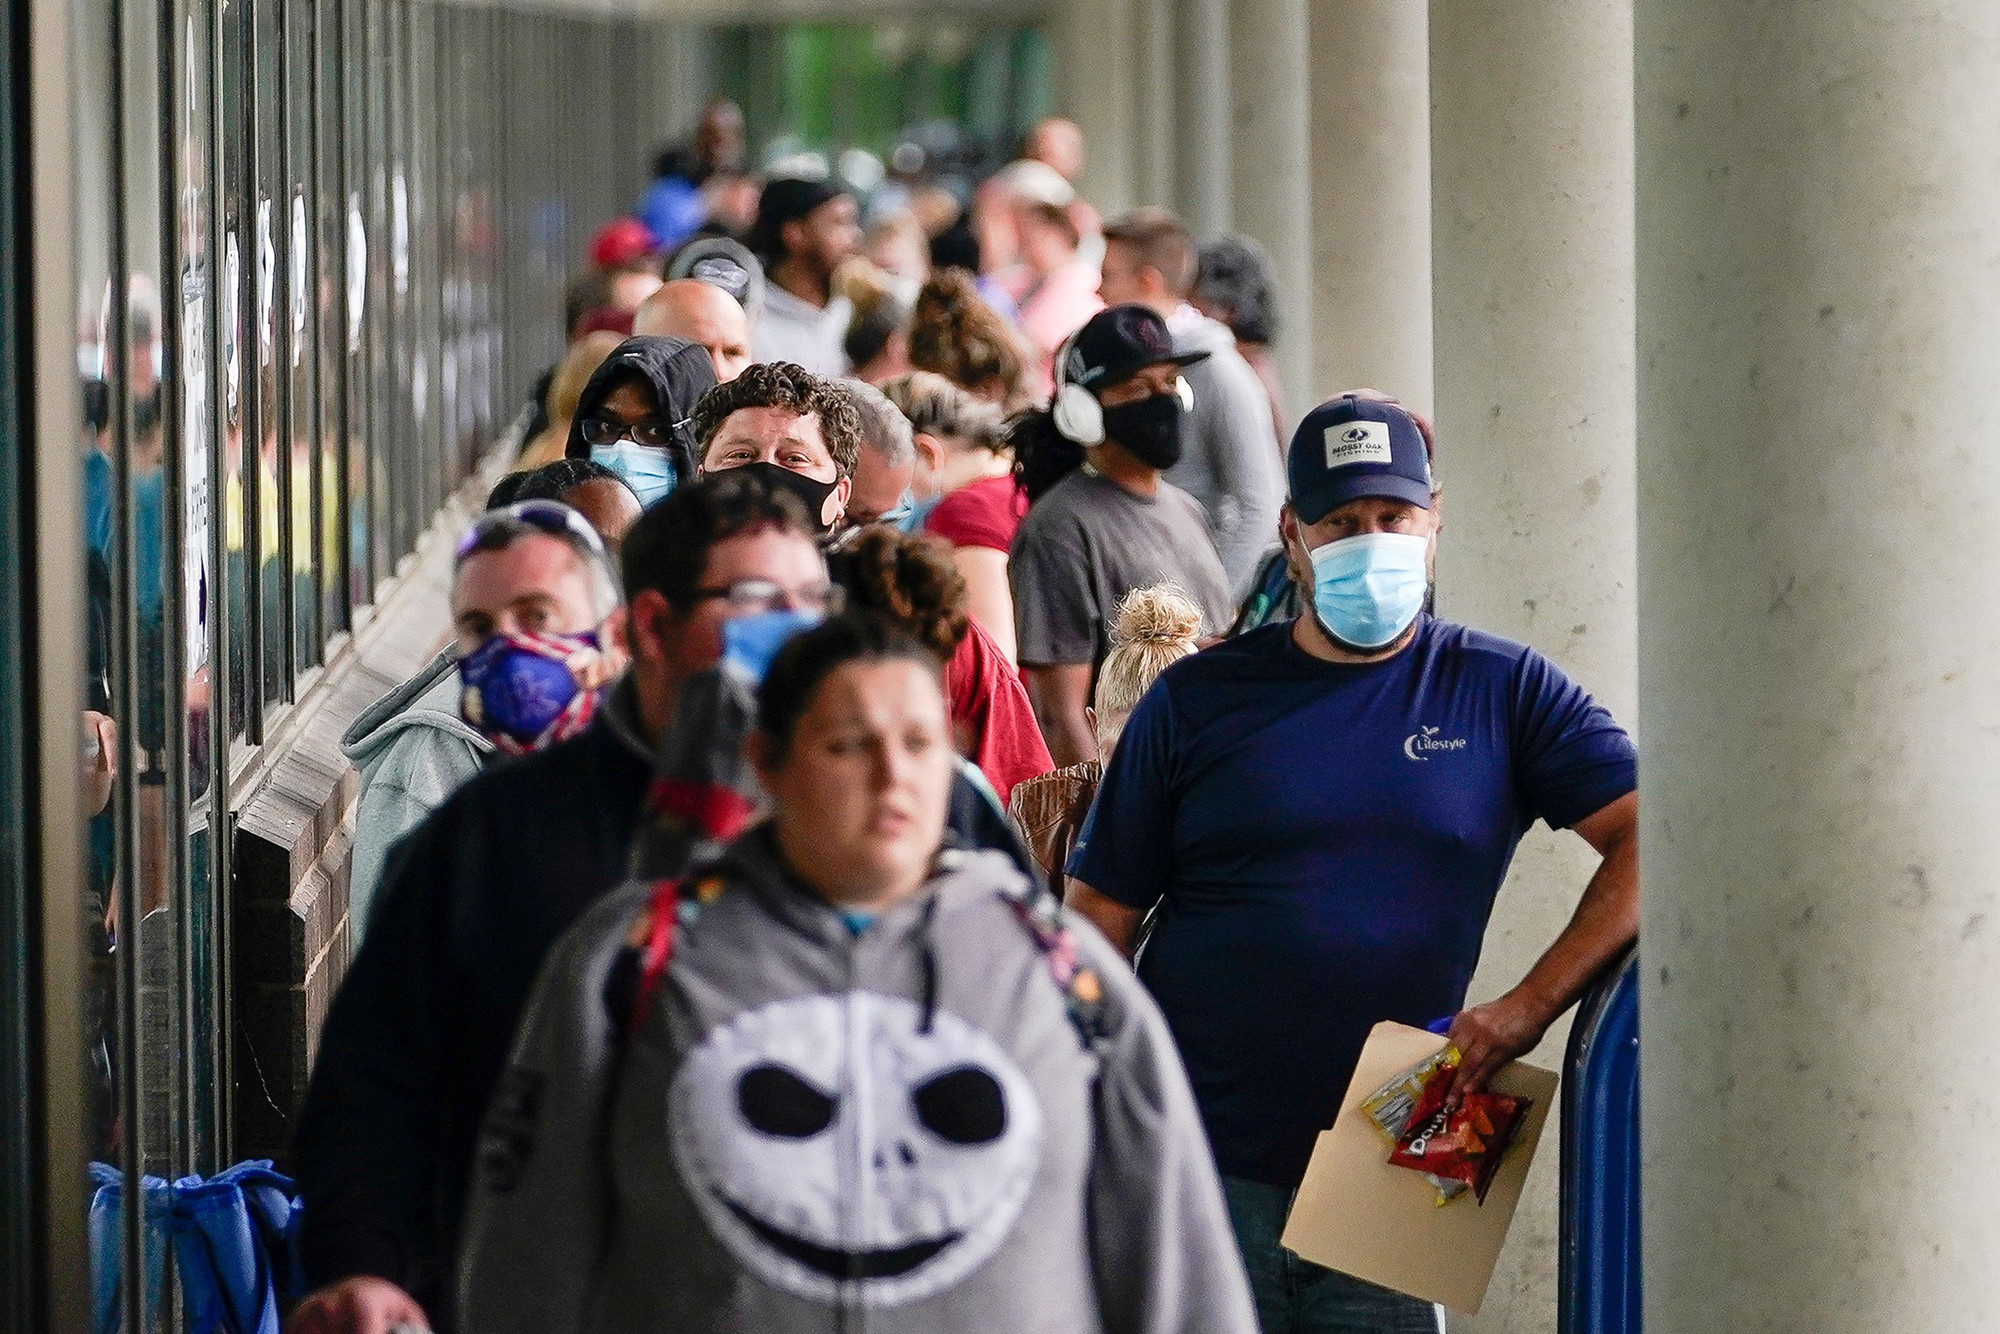 People line up outside a Kentucky Career Center hoping to find assistance with their unemployment claim in Frankfort, Kentucky, on June 18.